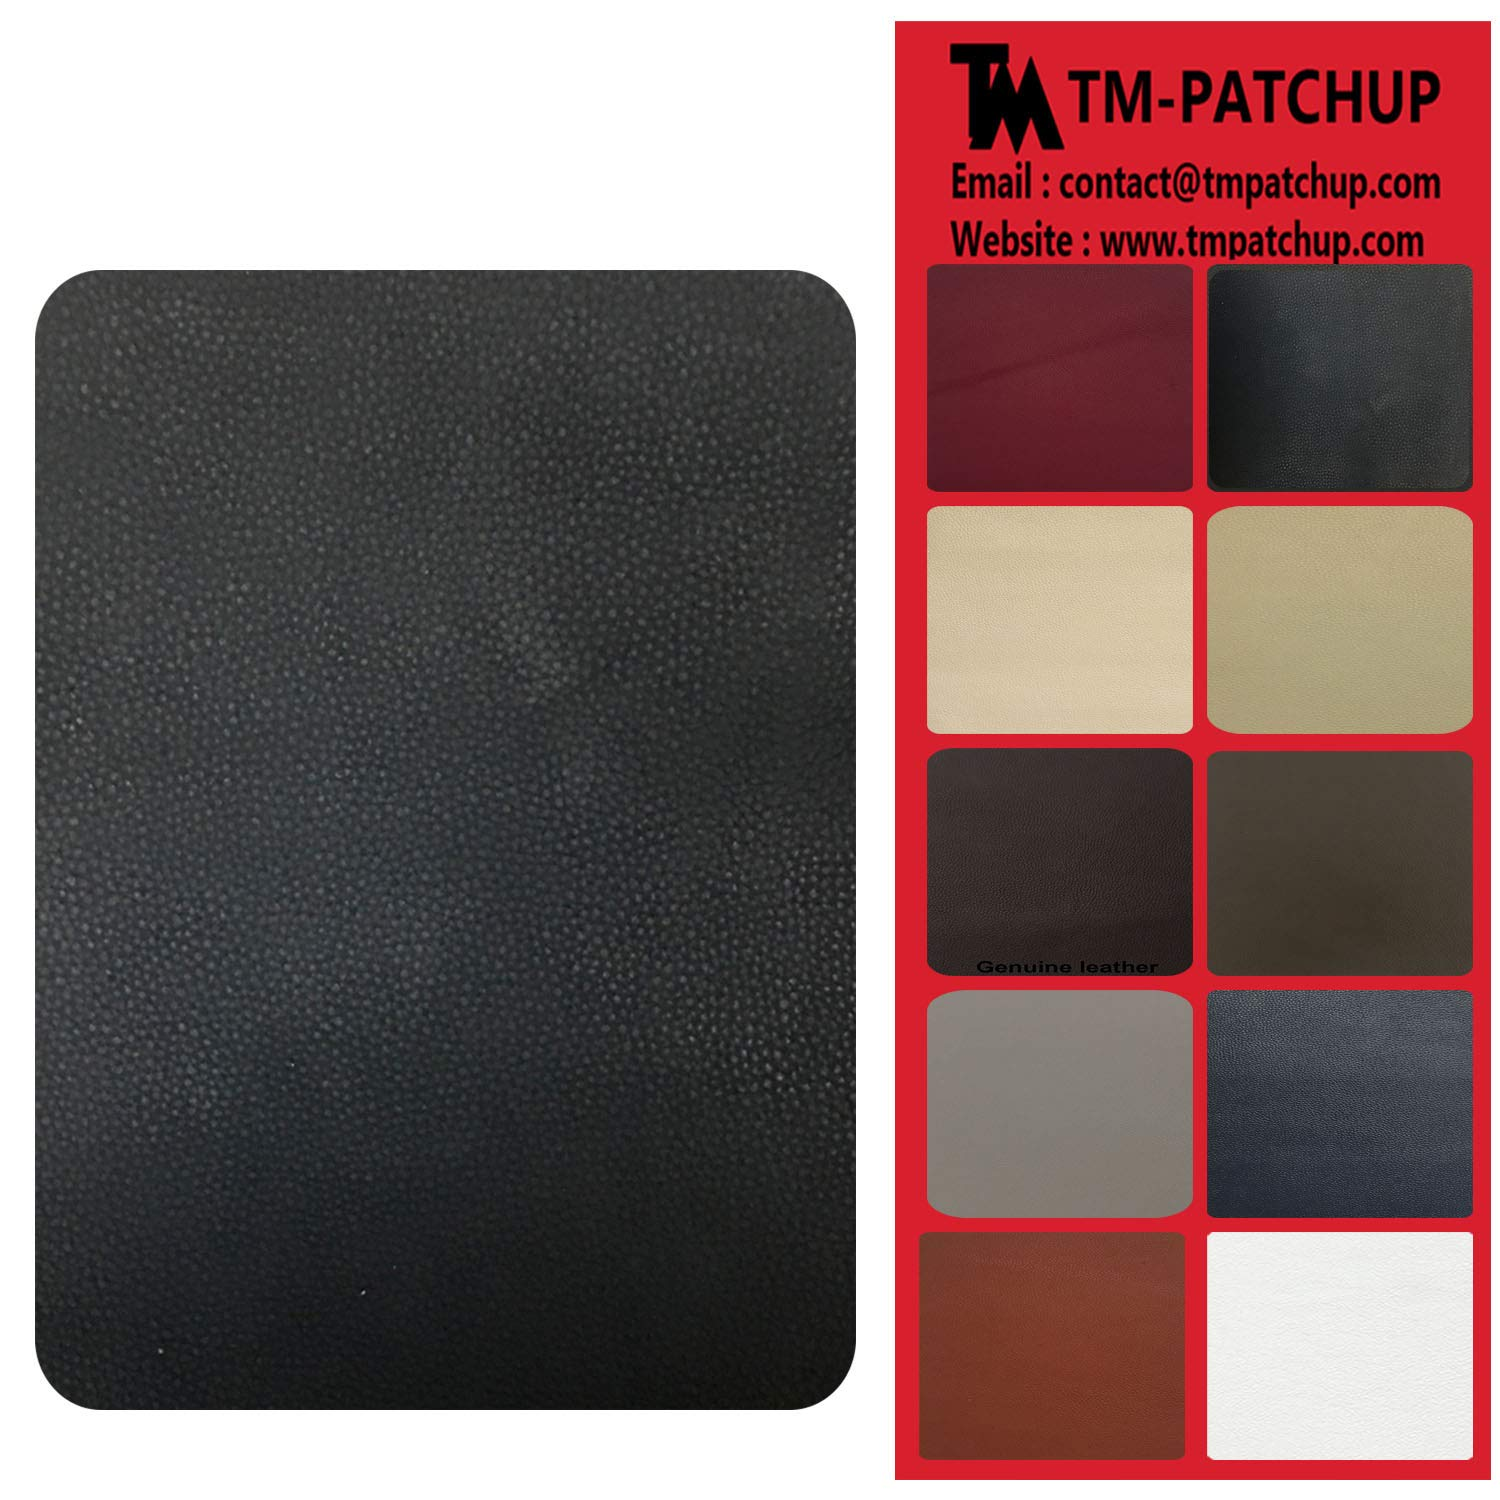 Grey Leather and Vinyl Repair Patch by TMgroup, Genuine Faux Leather Repair Patch, Peel and Stick for Couch, Sofas, car Seats, Hand Bags,Furniture, Jackets, Large Size 3'' x 6'' (2) TMpatchup